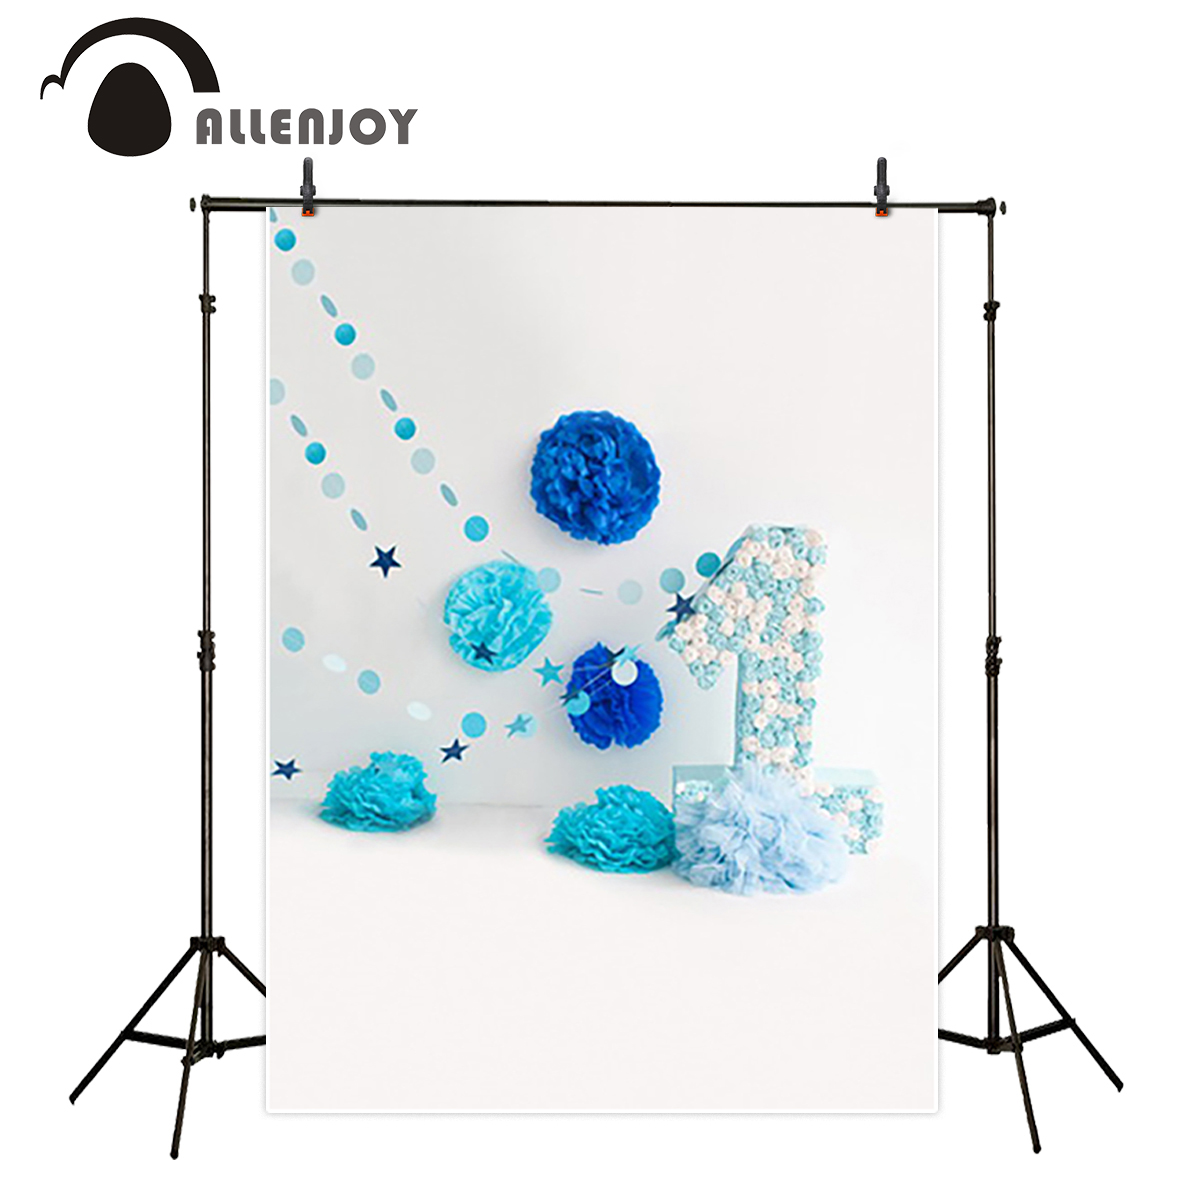 Allenjoy Luxurious Photo Background 1 Year Old Birthday Party Blue Flower Cute Indoor Real Camera Photography Studio